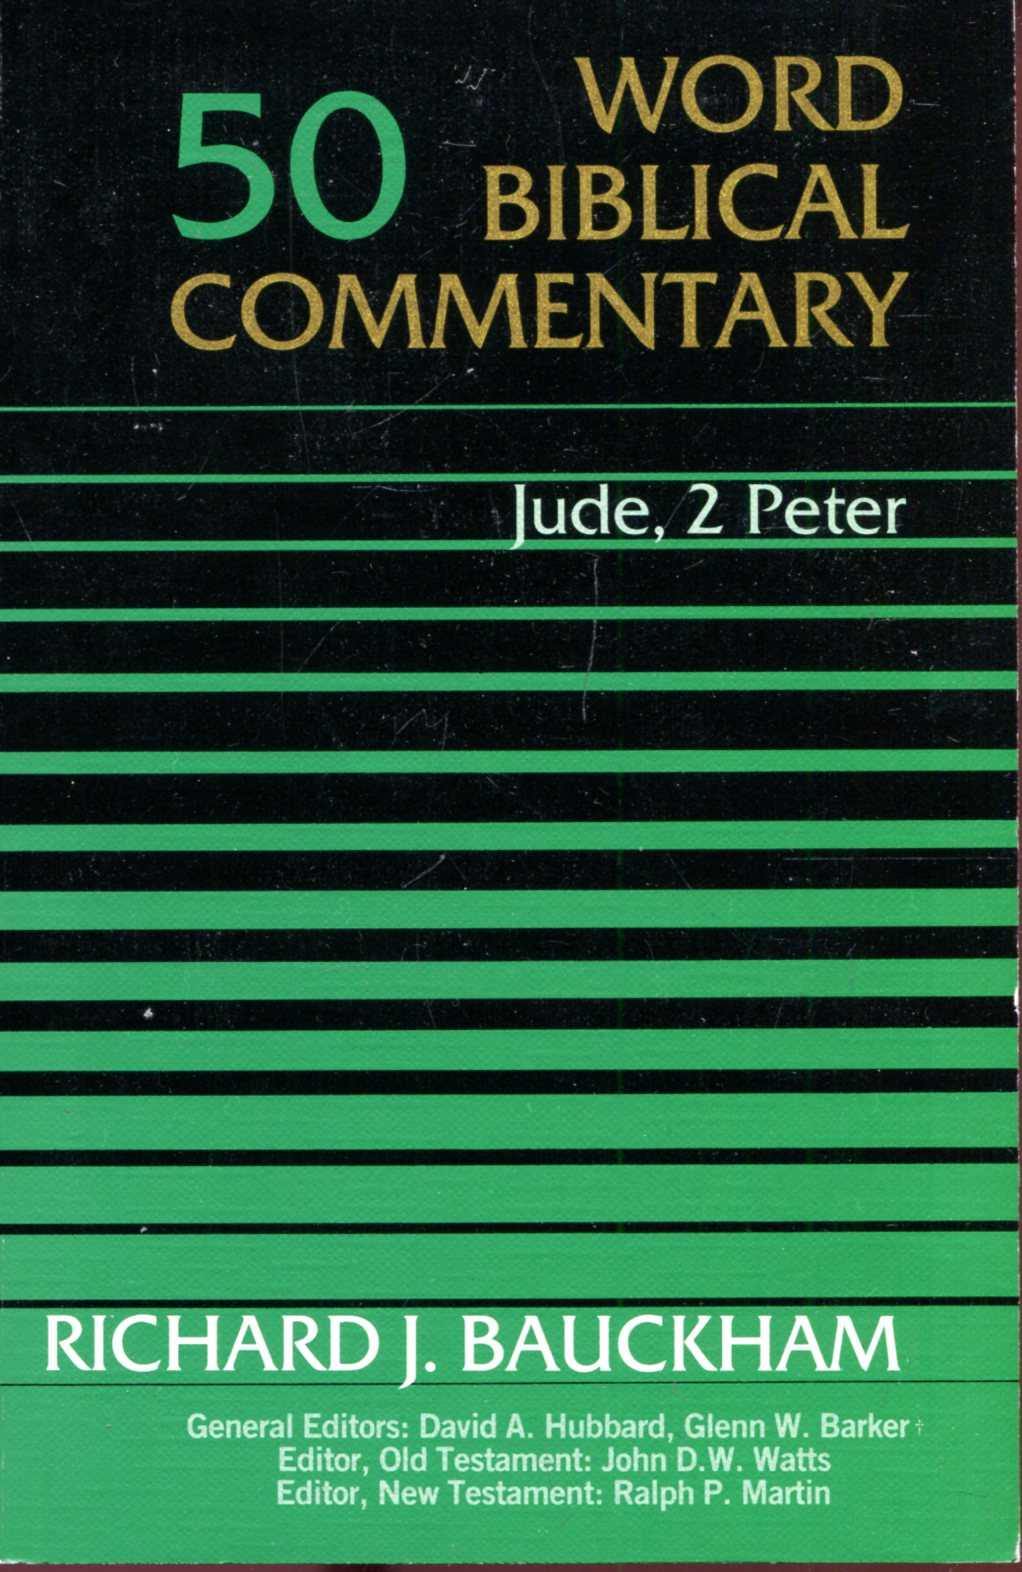 Image for Word Biblical Commentary volume 50 : Jude, 2 Peter